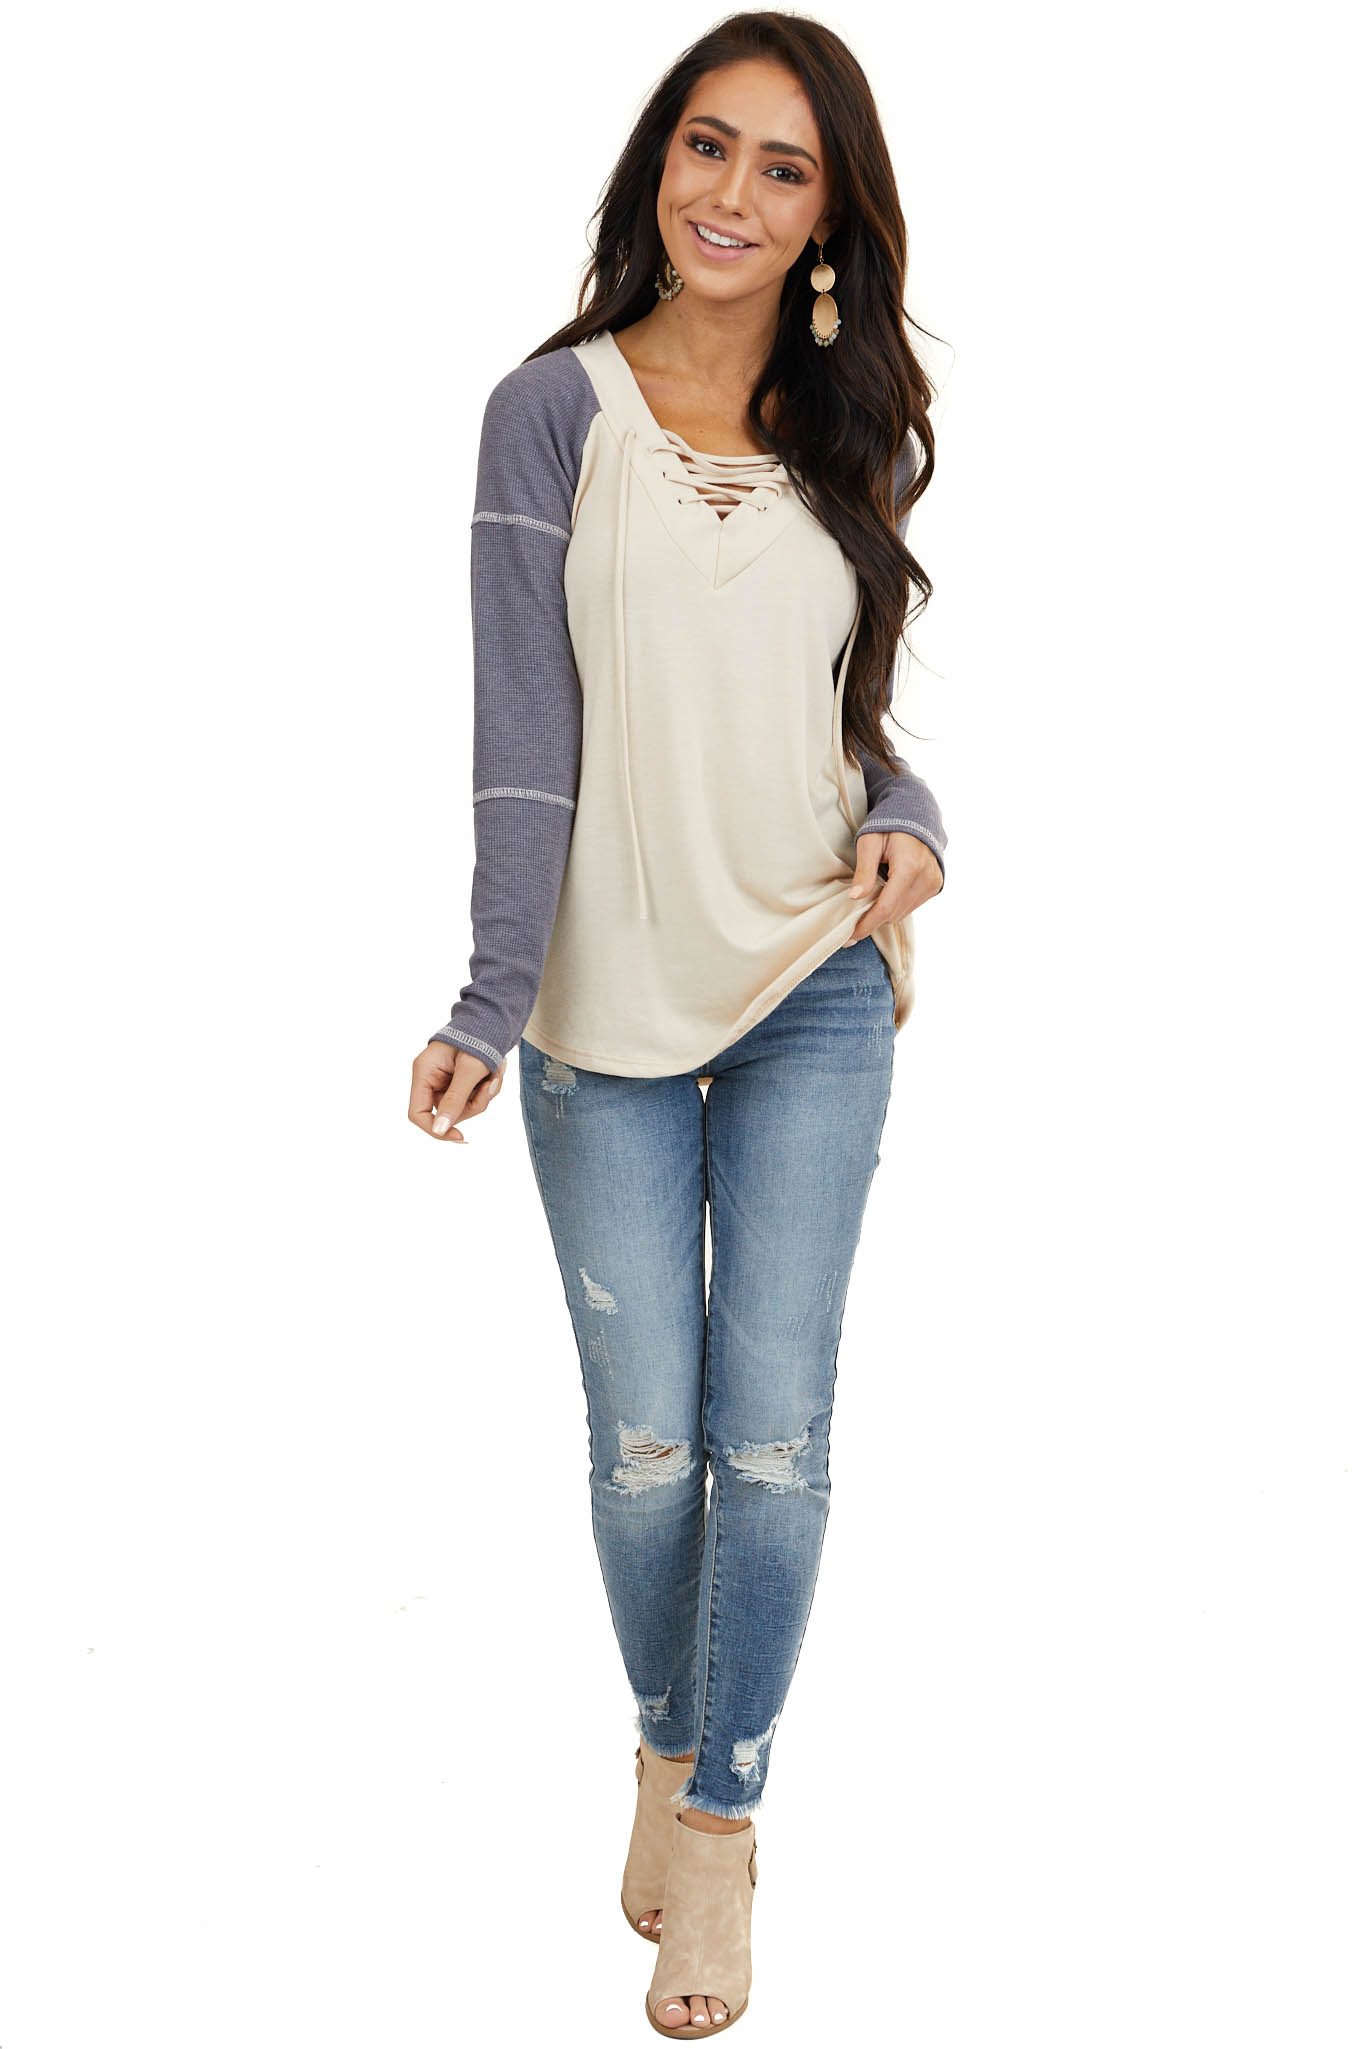 Light Latte Long Sleeve Top with Navy Contrast Sleeves